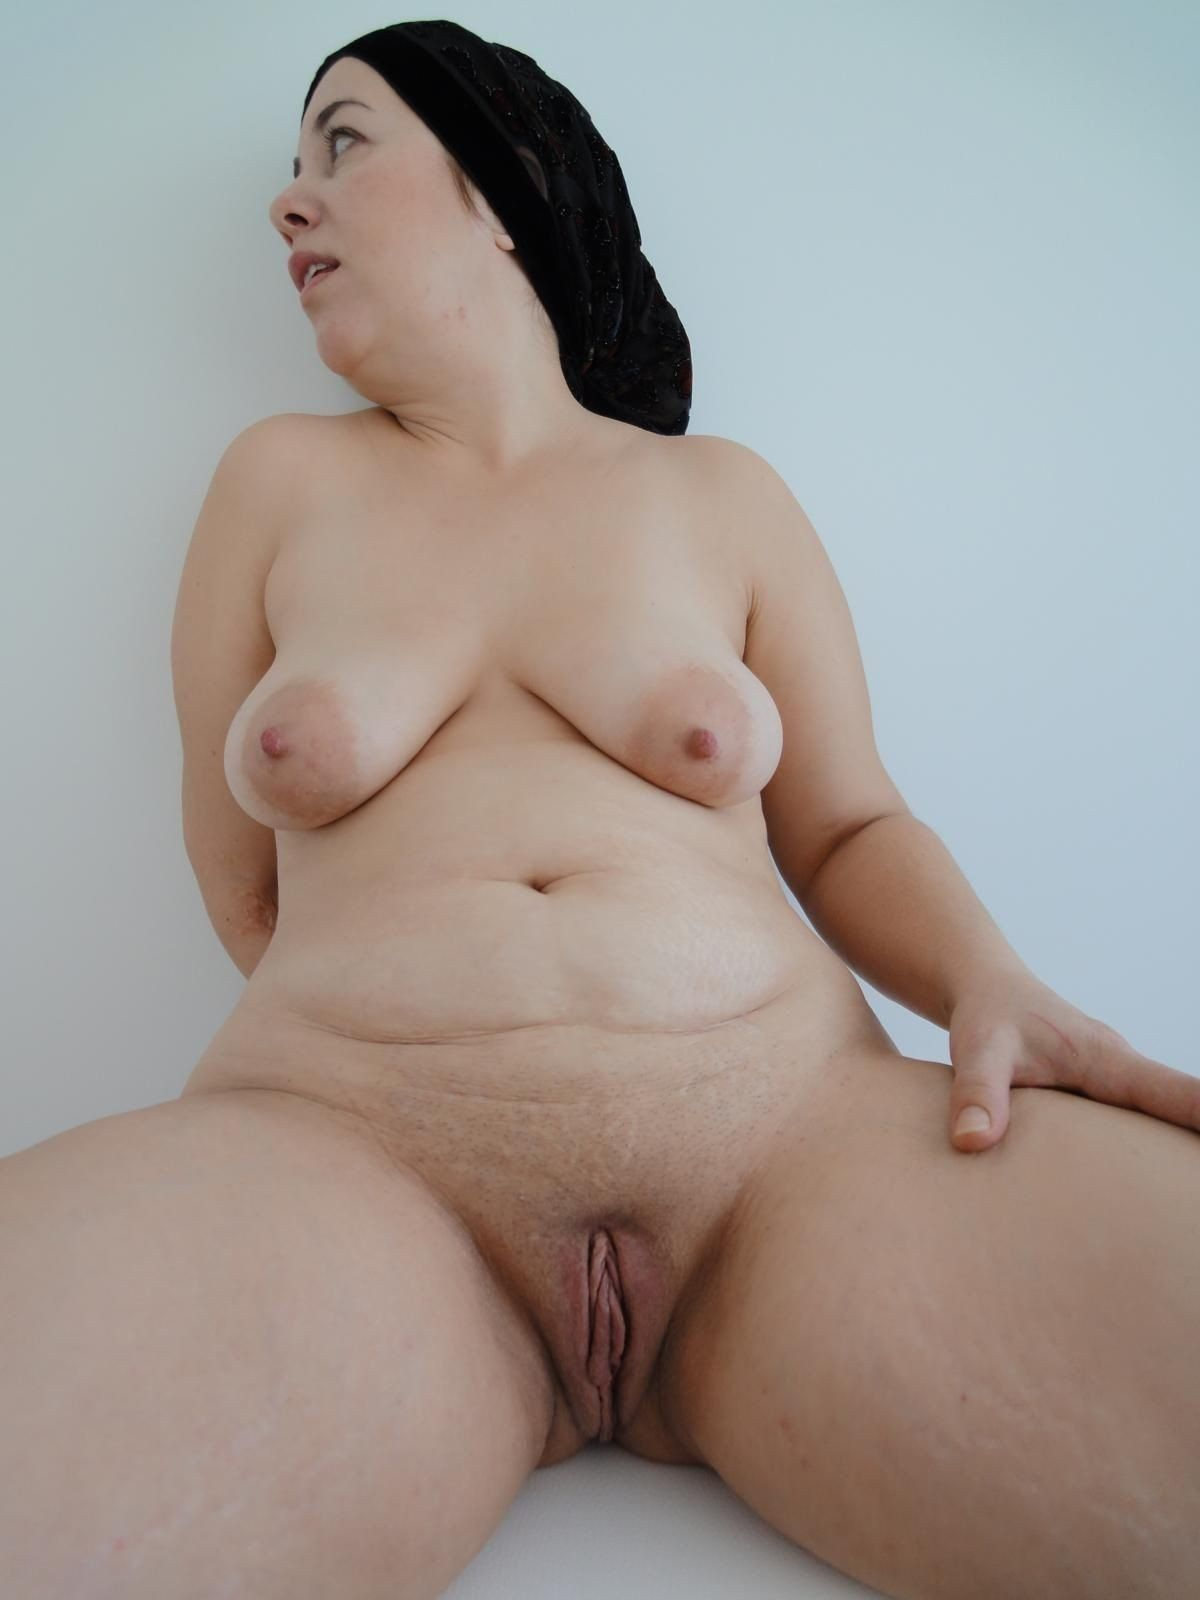 Bbw Sex Porn Com naked bbw shaved pussy - porn archive. comments: 3